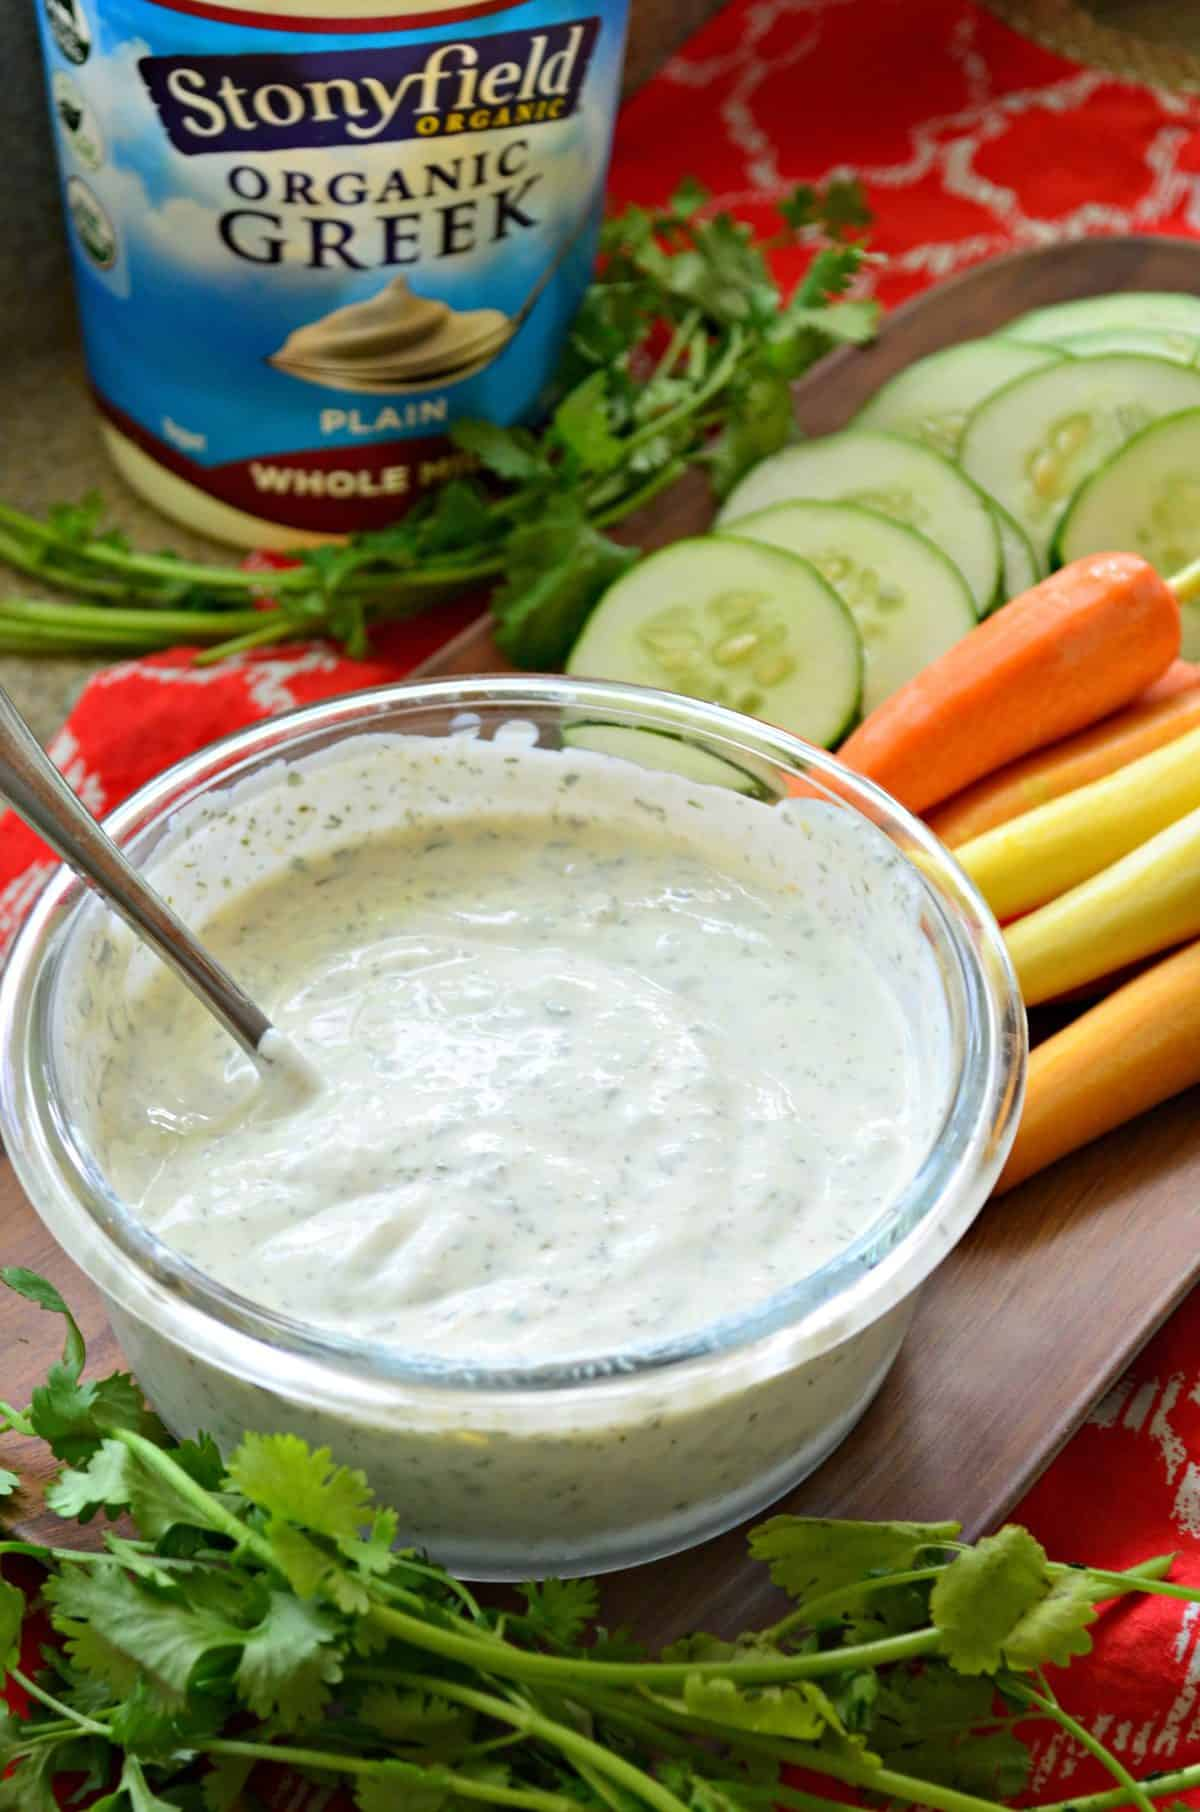 white herbed dip in glass bowl with metal spoon on wooden platter with sliced cucumbers and carrots.